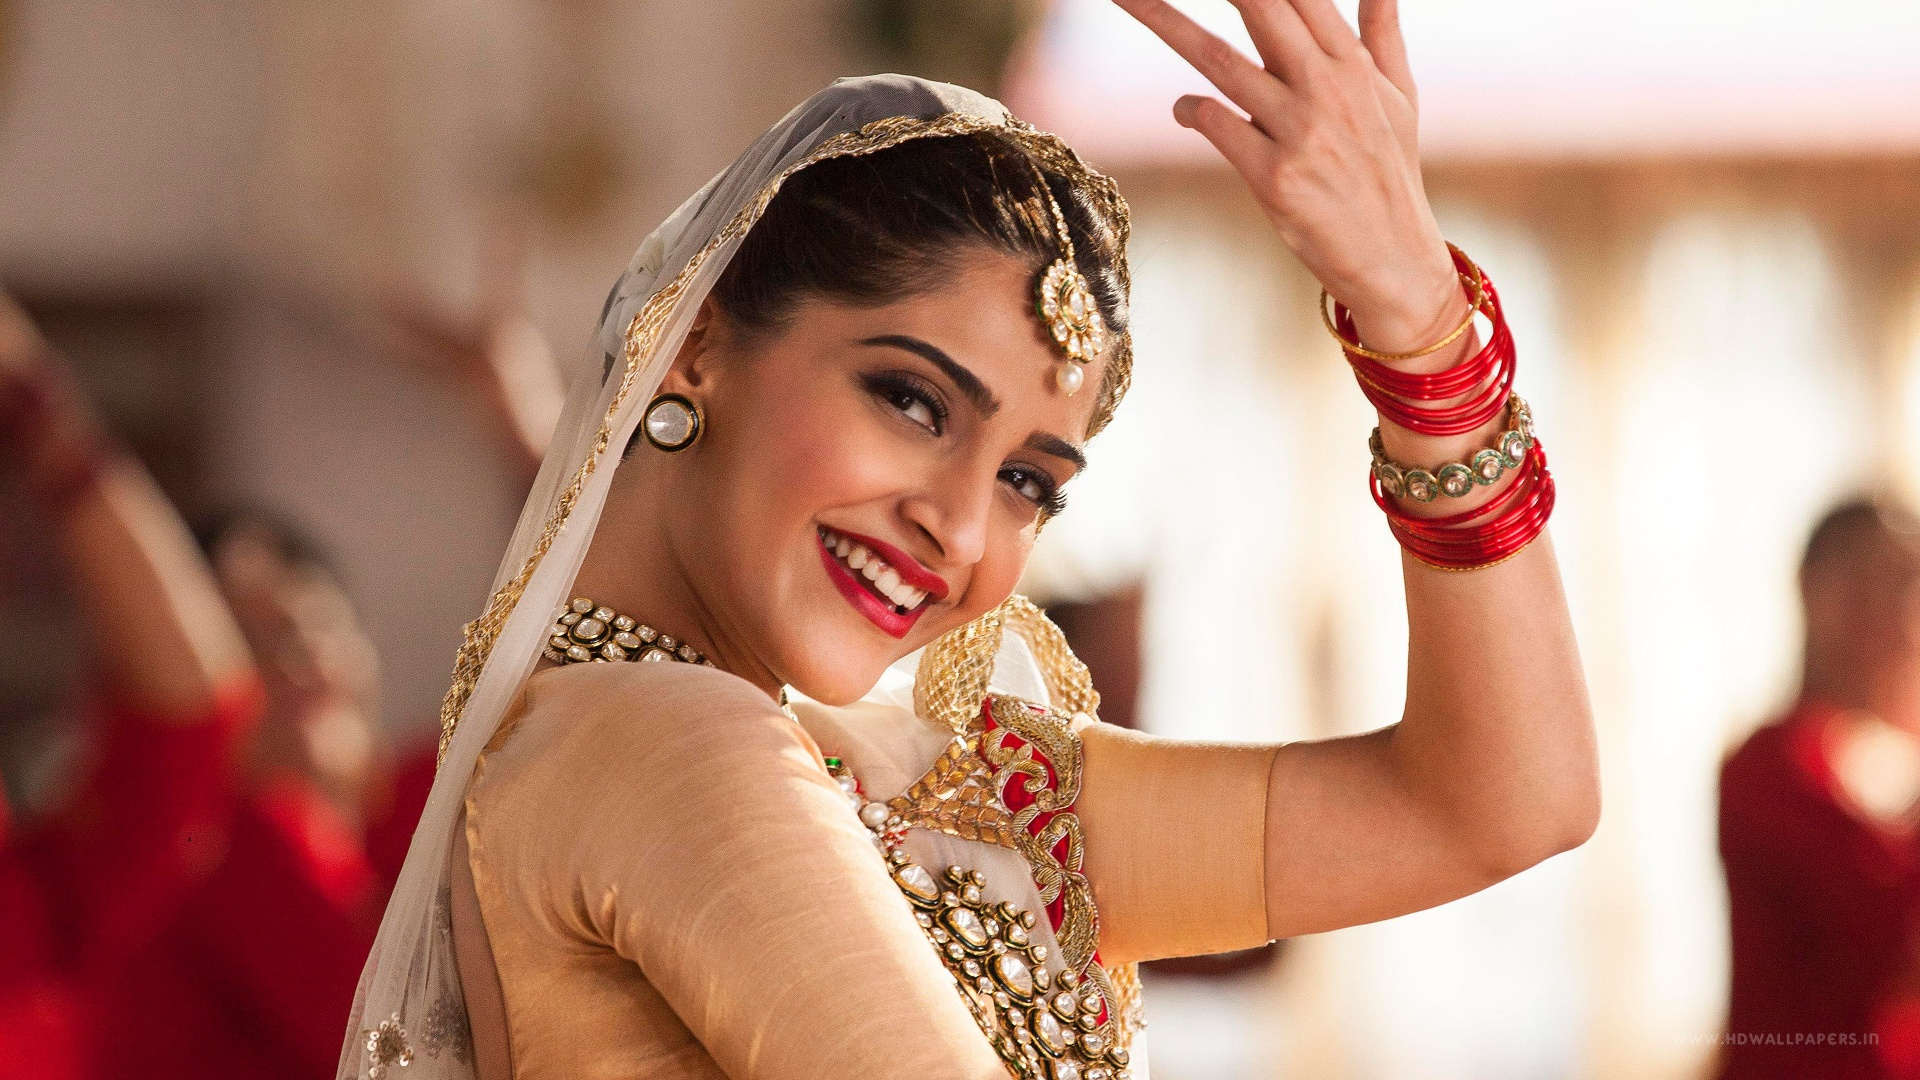 sonam Description: sonam kapoor (born 9 june 1985) is an indian film actress who appears in bollywood filmsshe is the daughter of actor anil kapoor she graduated from college in political science and economics.